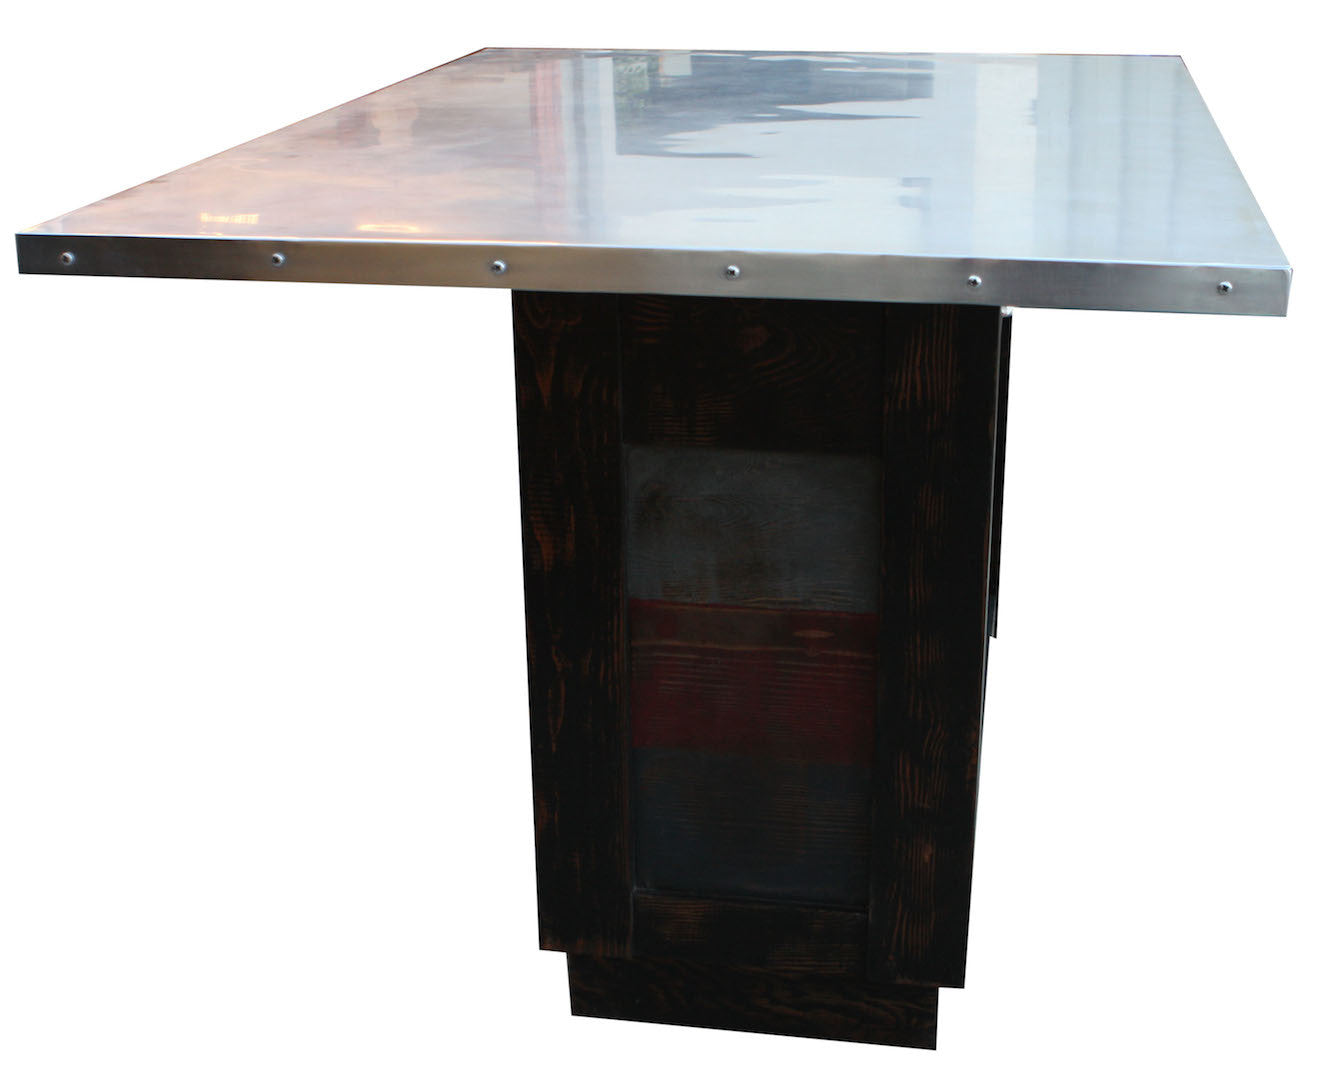 Custom Zinc Top Reclaimed Wood Kitchen Island – Mortise & Tenon